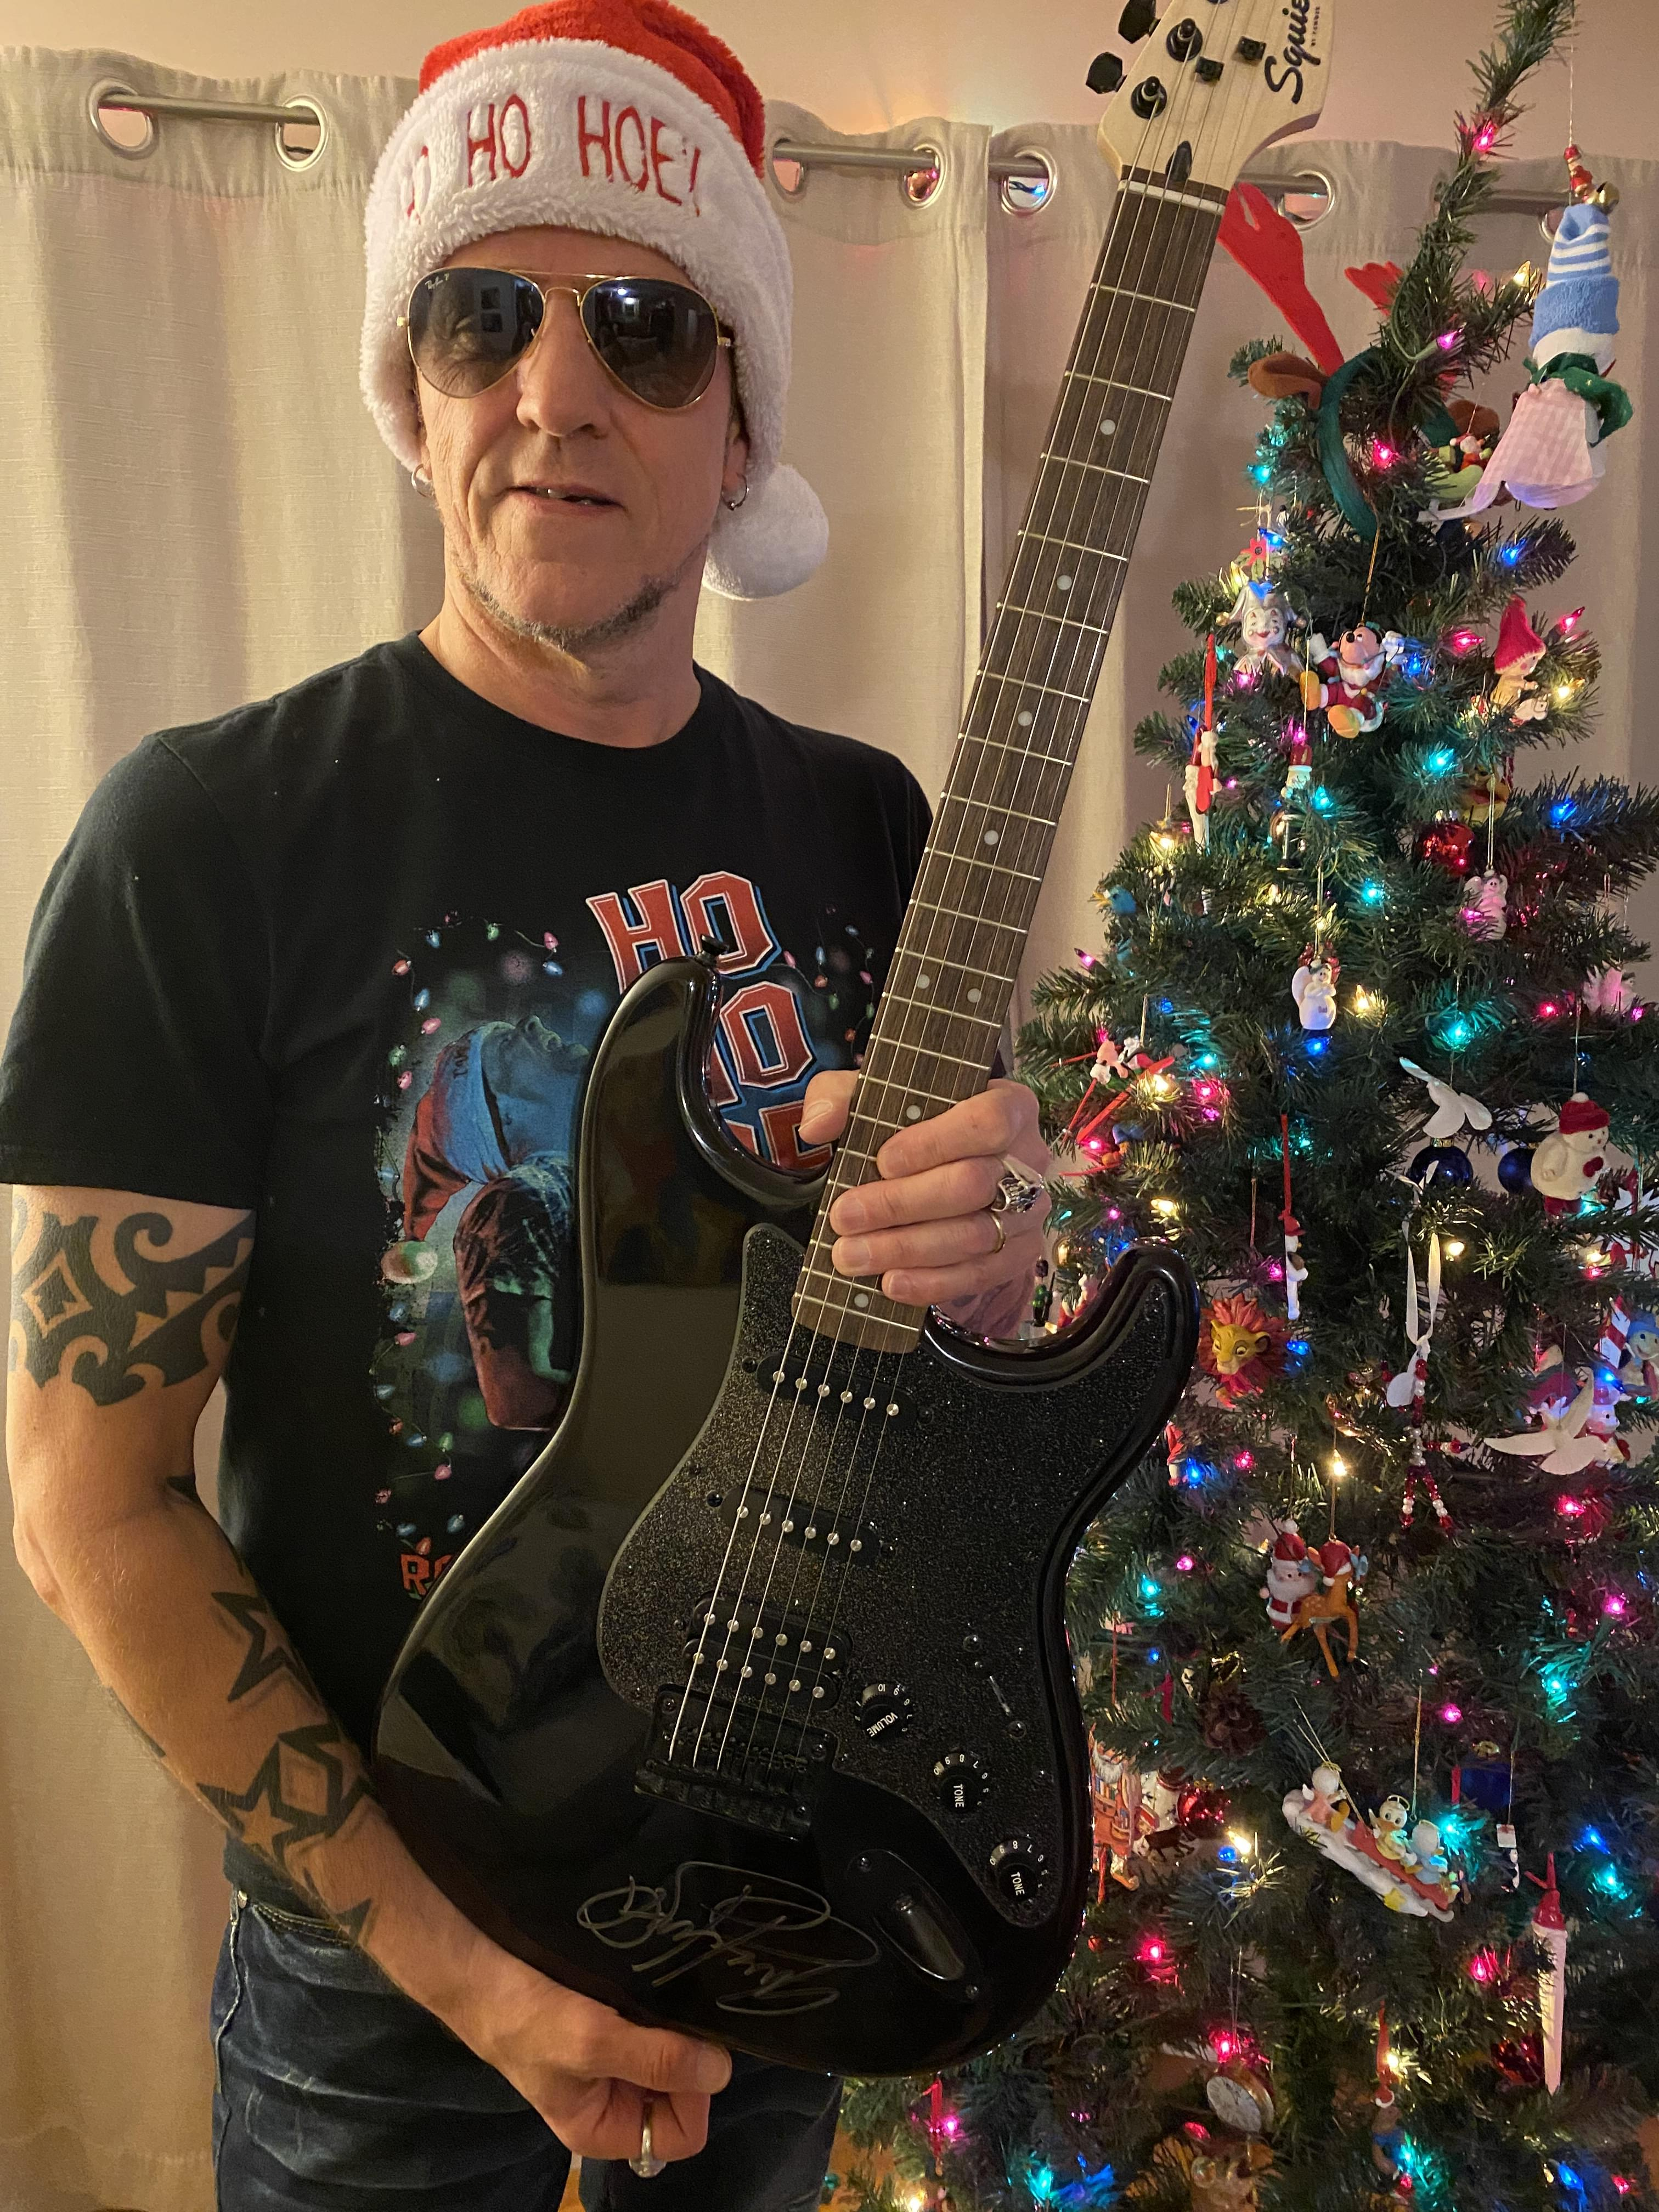 PODCAST – Tuesday, December 8: Toy Drive Week Continues; Gary Hoey; Comedian Mitch Fatel